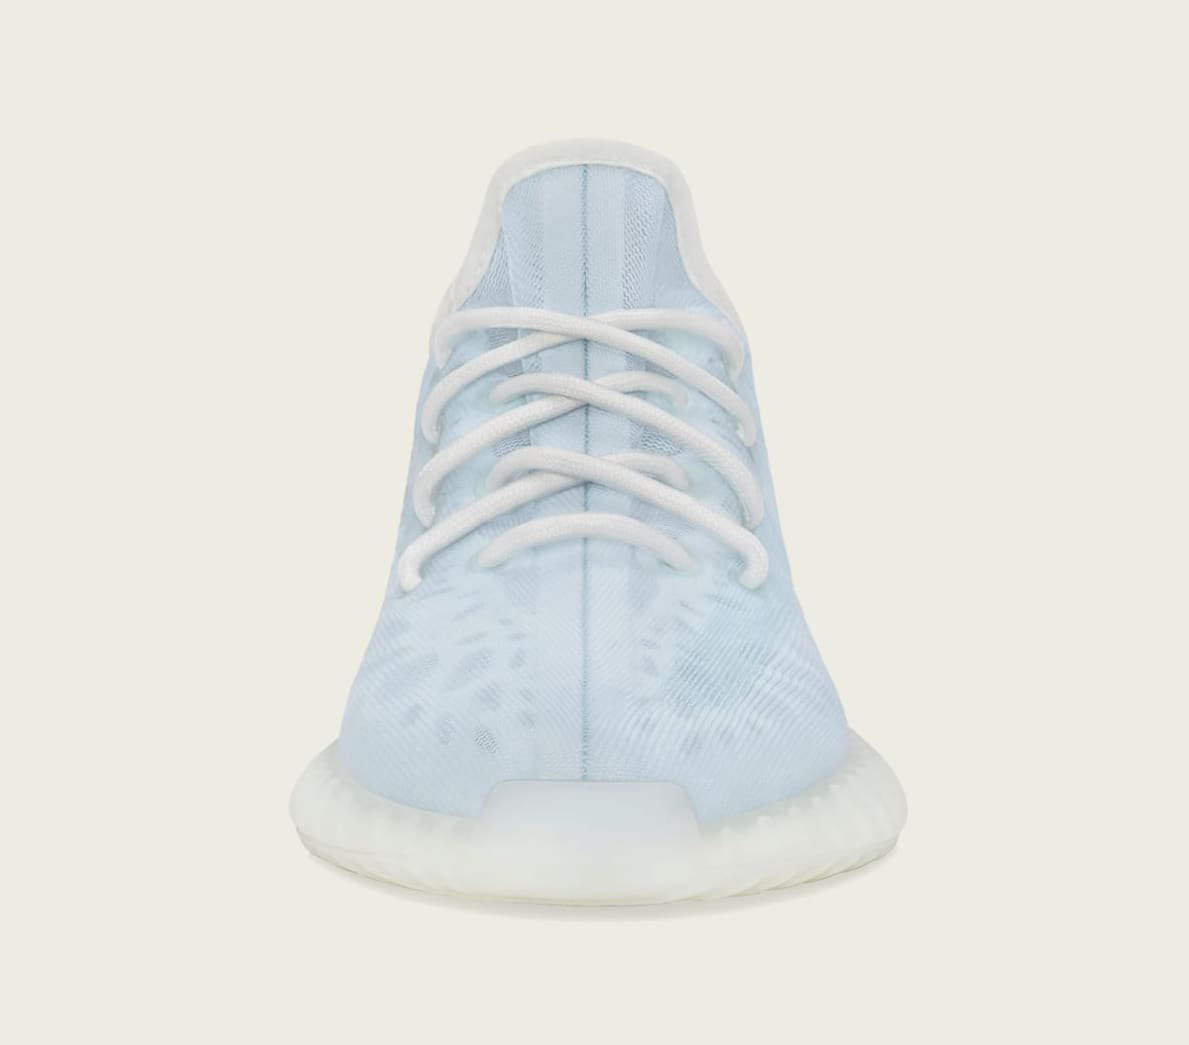 adidas-yeezy-boost-350-v2-mono-ice-gw2869-front